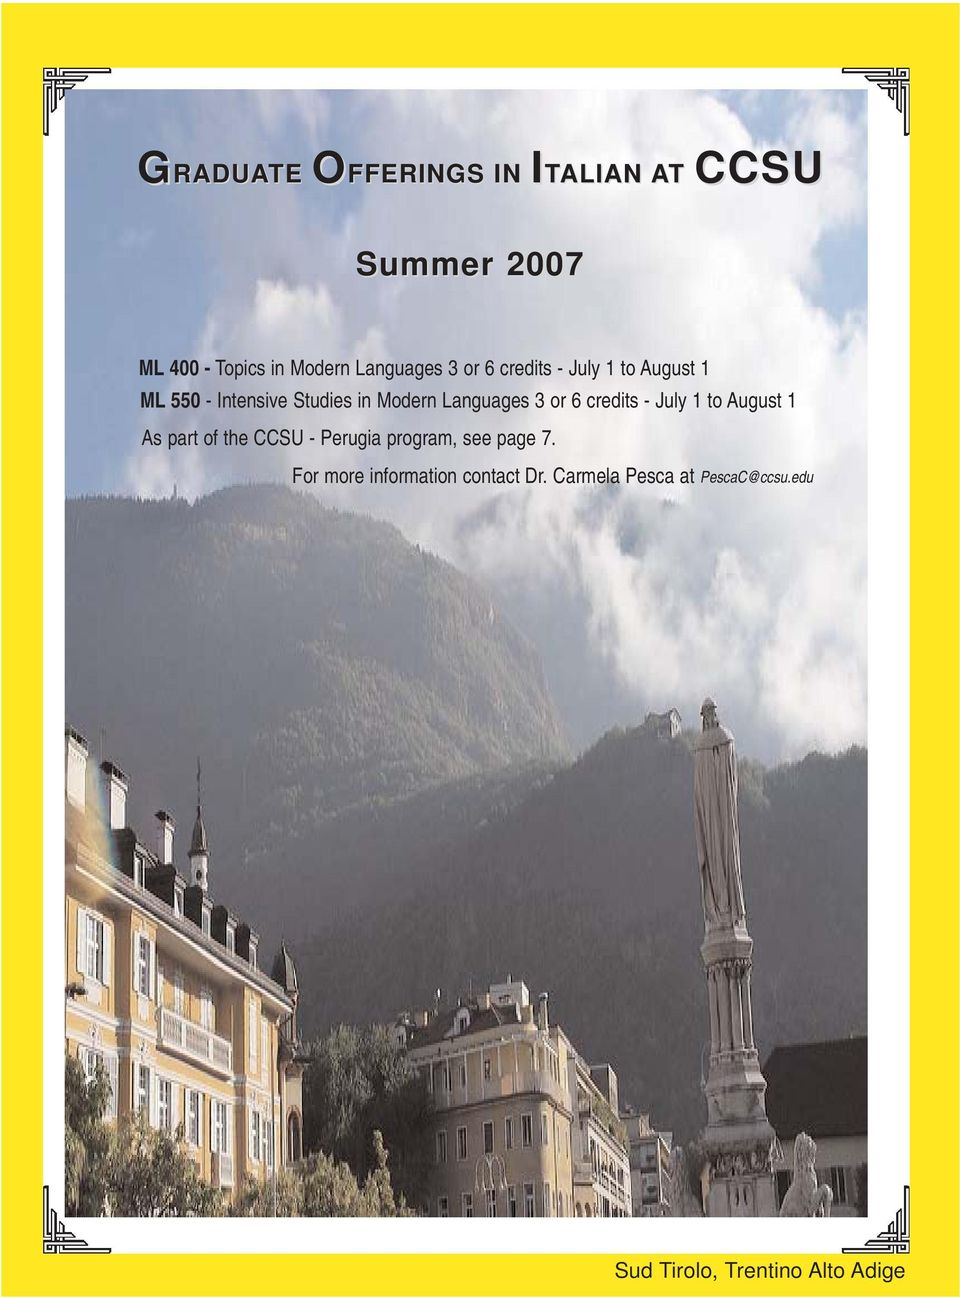 credits - July 1 to August 1 As part of the CCSU - Perugia program, see page 7.